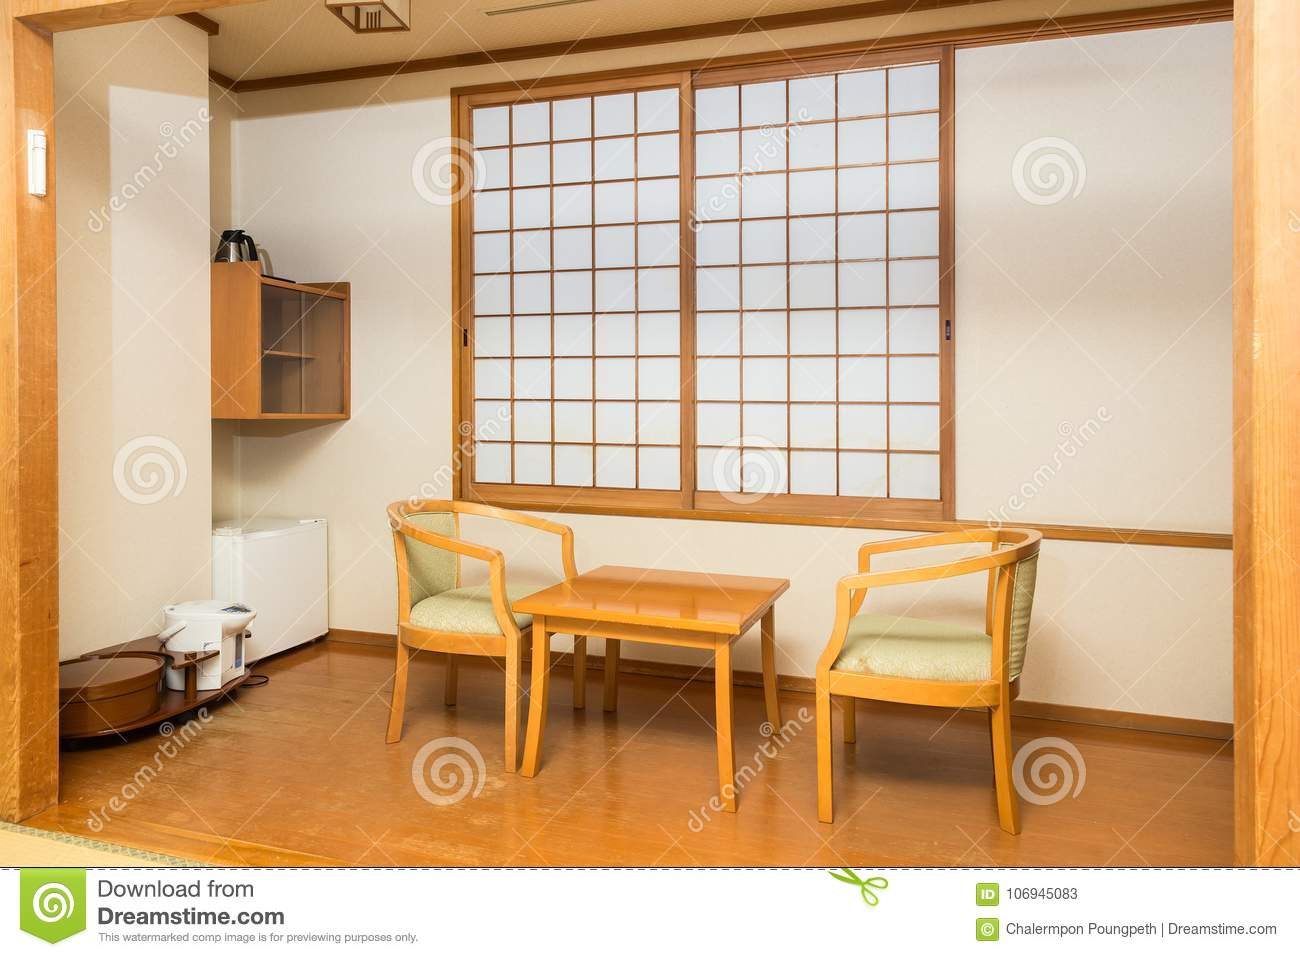 Tremendous Japanese Style Room With Traditional Sliding Windows Stock Interior Design Ideas Philsoteloinfo